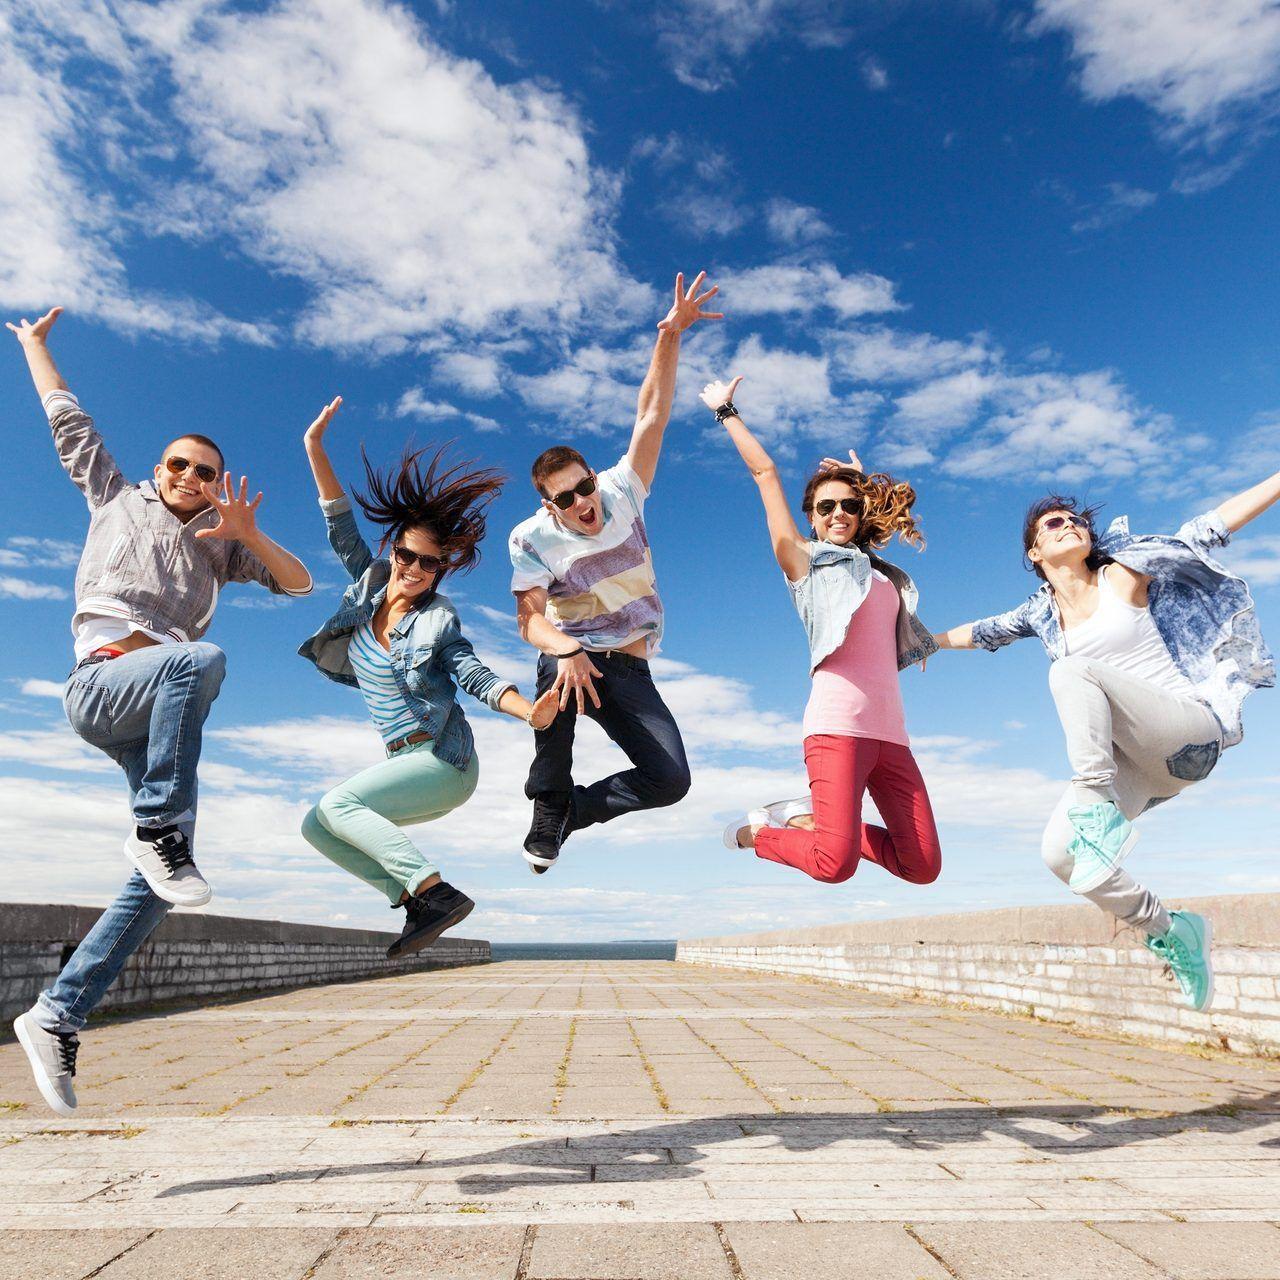 Social Media and the Pursuit of Happiness. Does Social